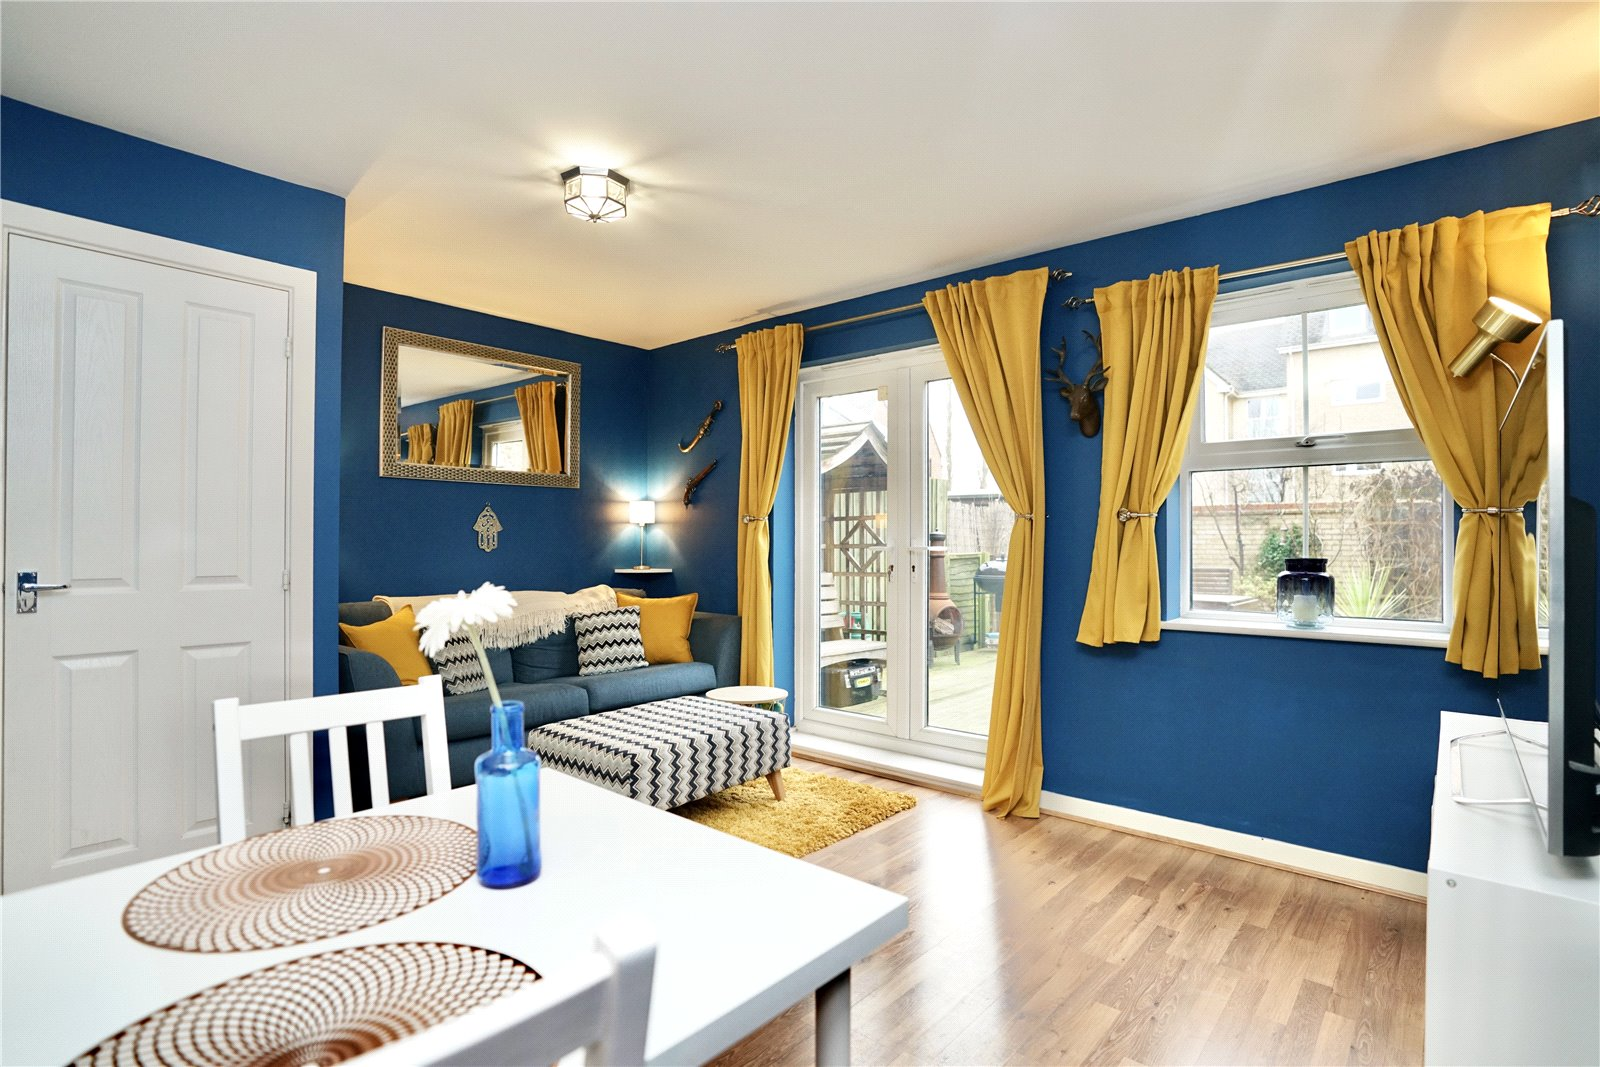 3 bed house for sale in Linton Close, Eaton Socon  - Property Image 10